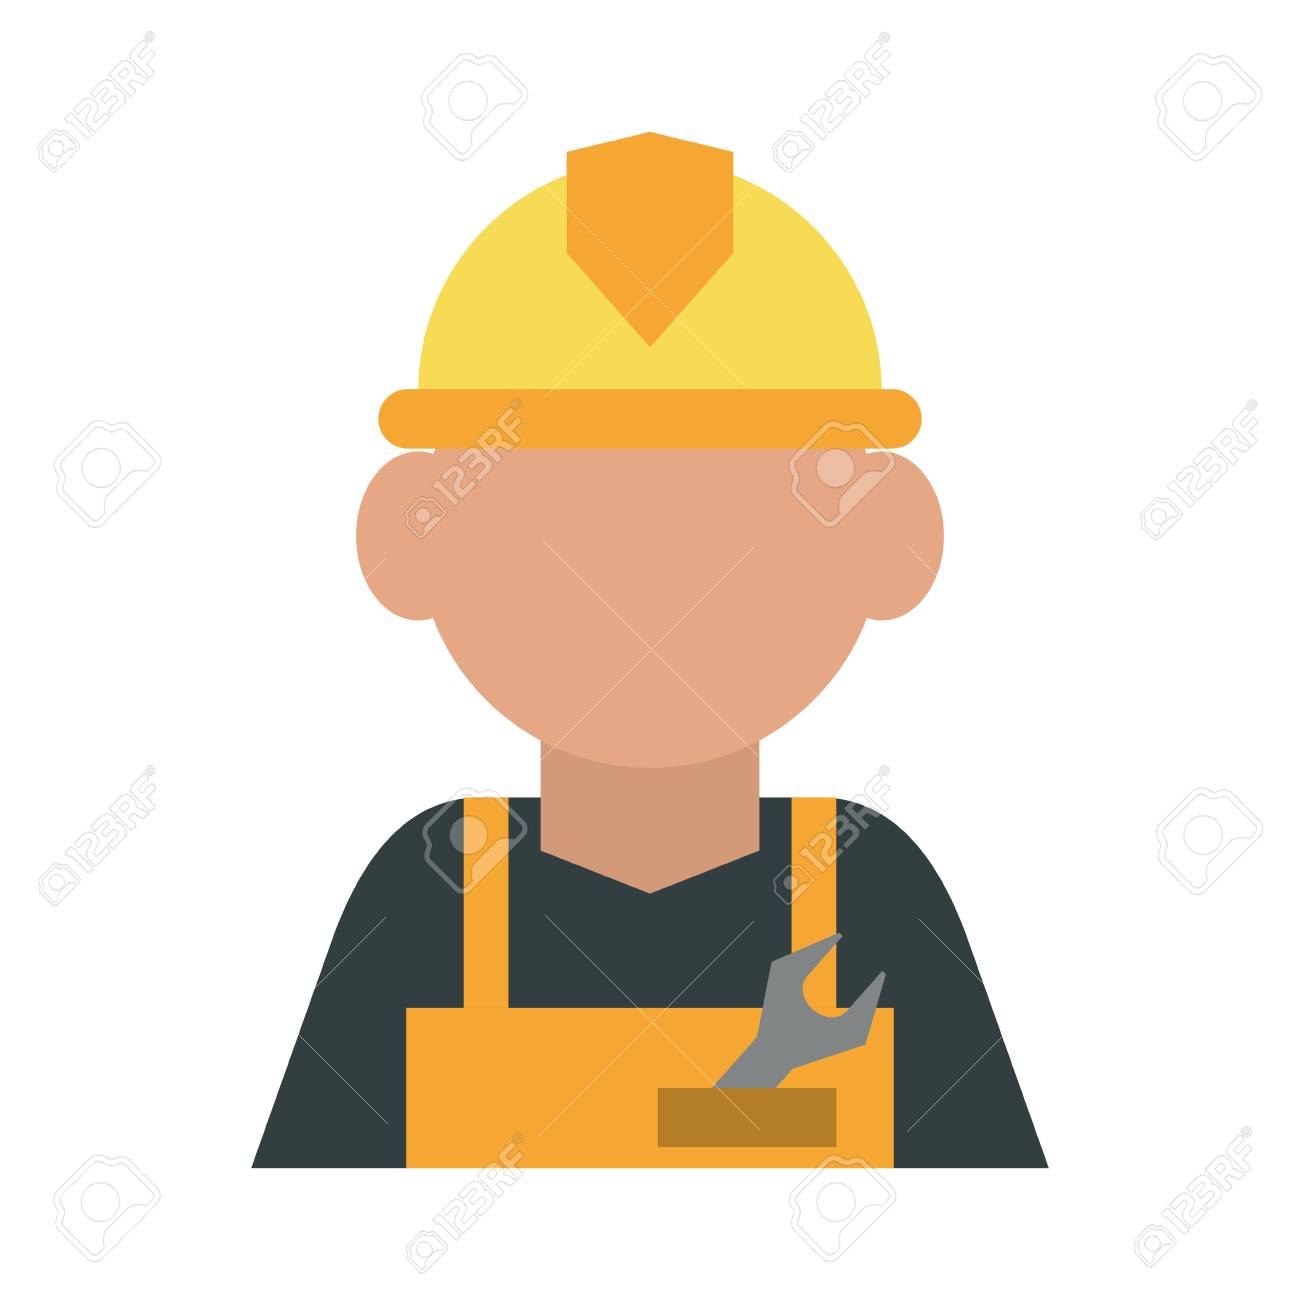 Construction Worker Builder Contractor Icon Image Vector Illustration Royalty Free Cliparts Vectors And Stock Illustration Image 78148321